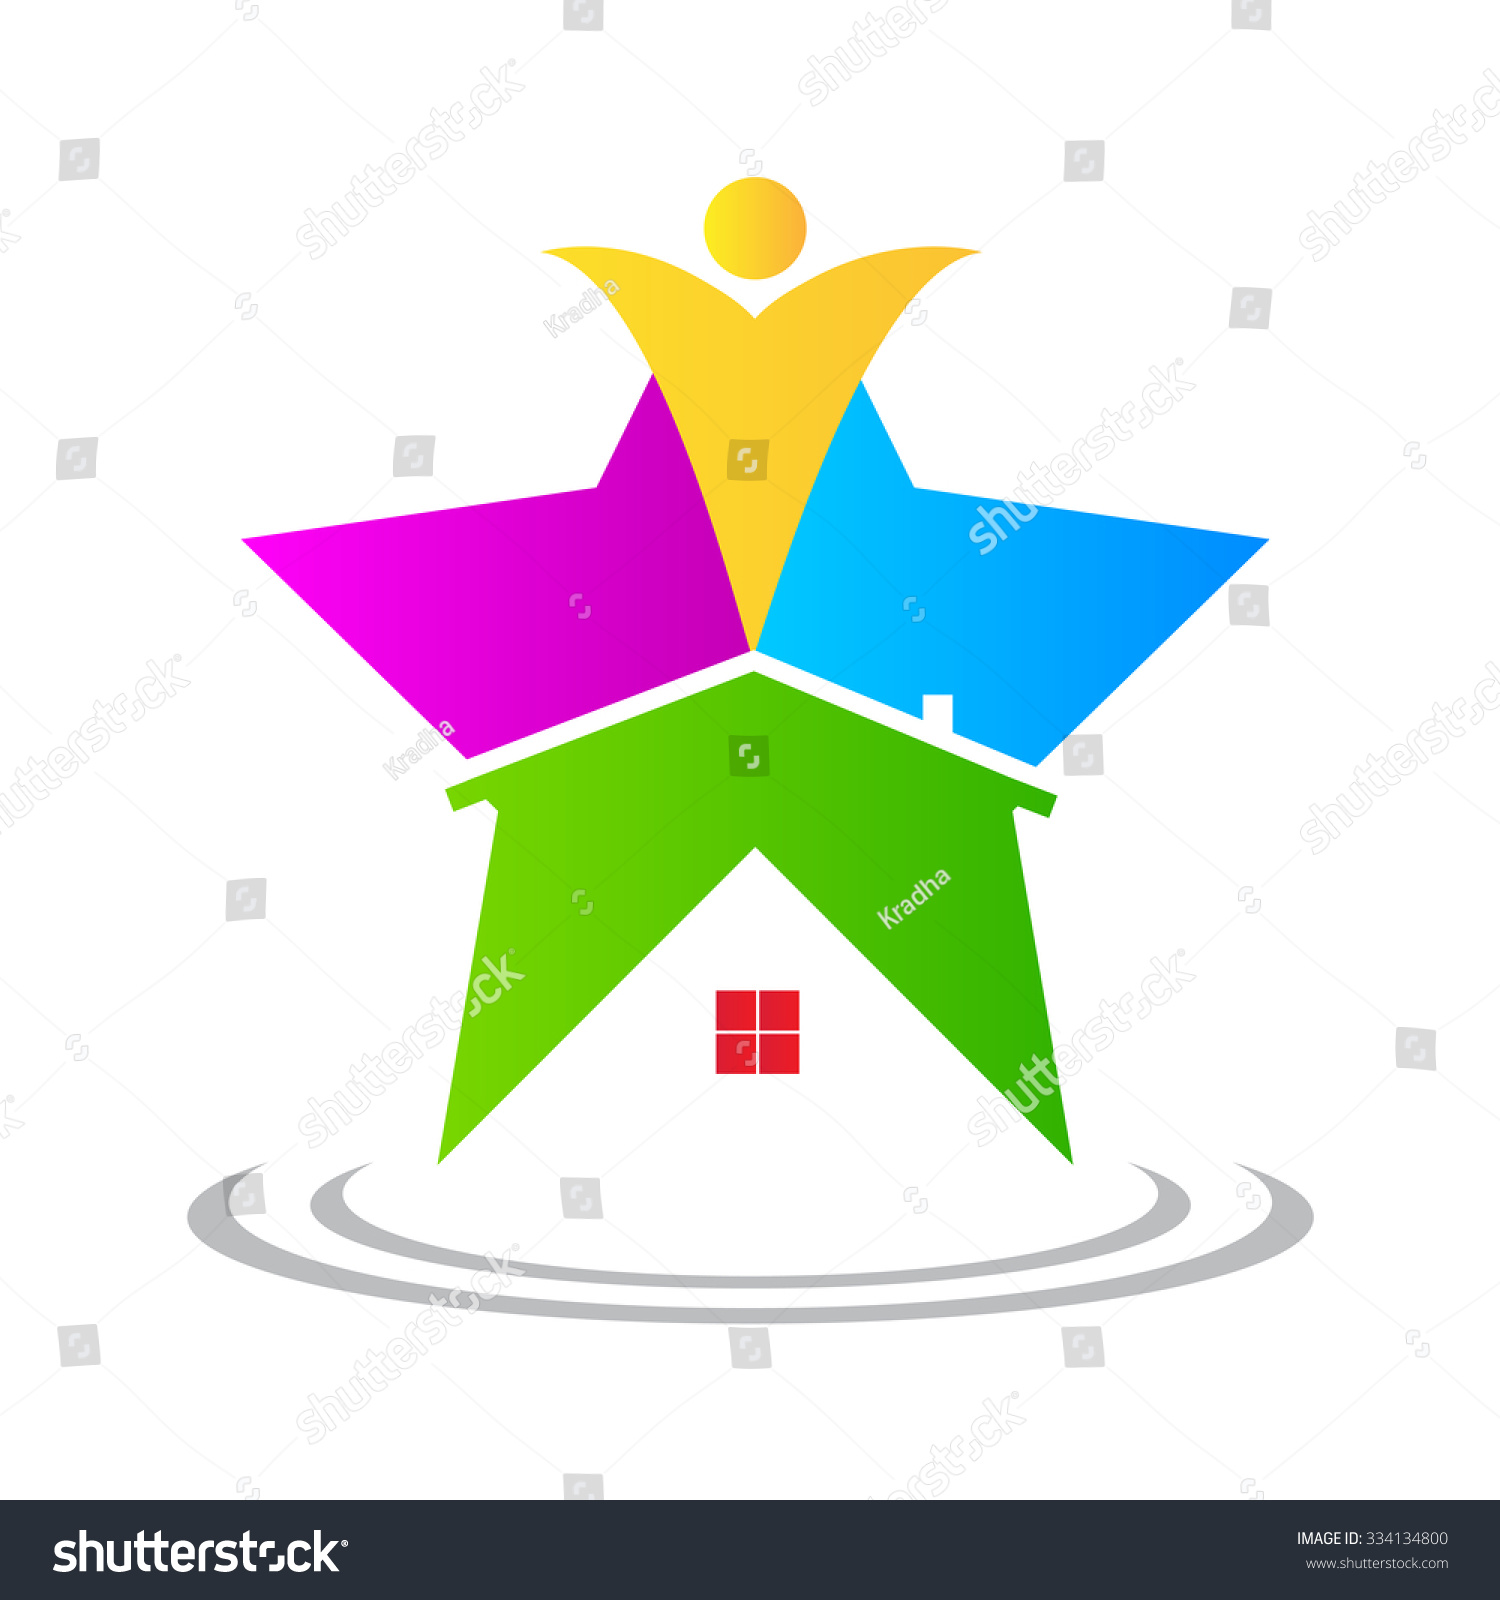 Vector Drawing Represents Star Home Design Stock Vector 334134800 ...